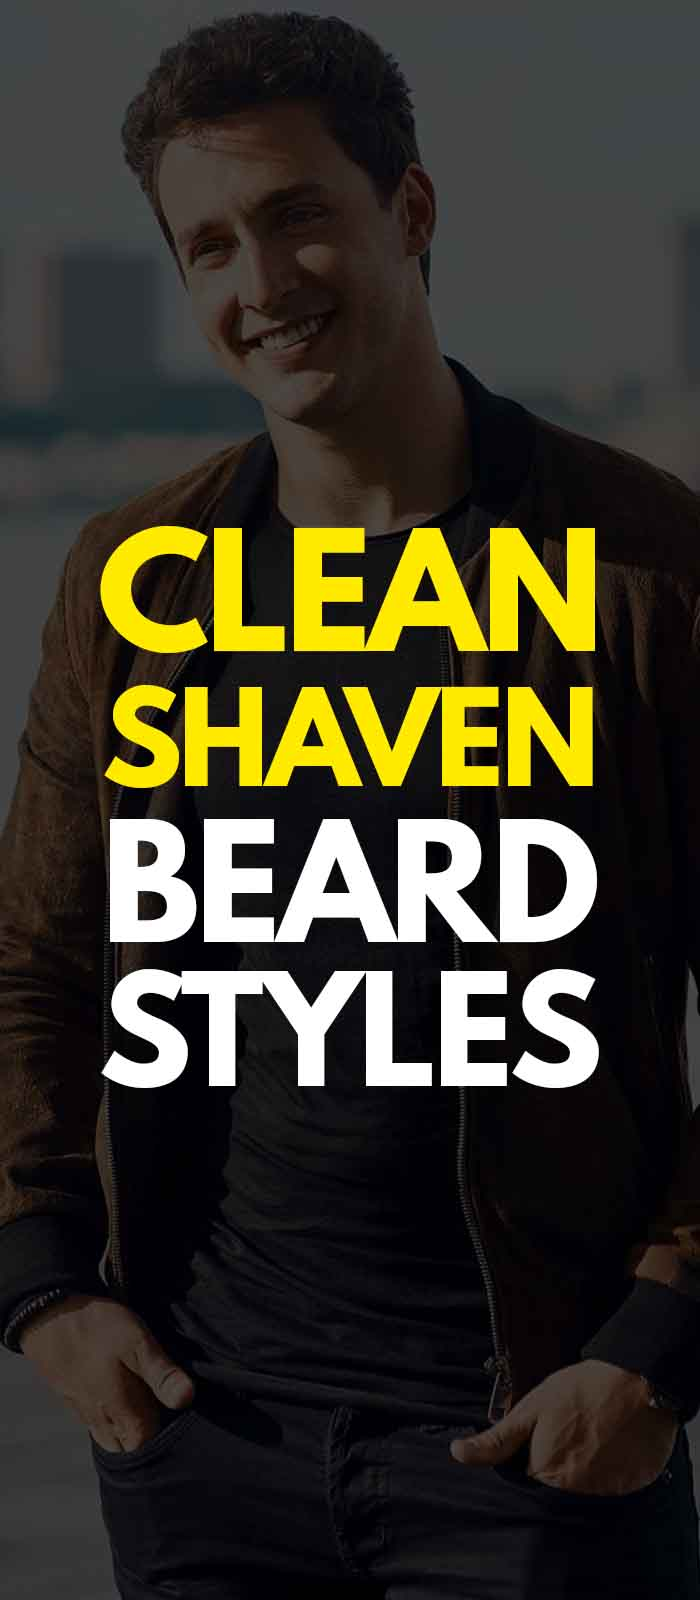 Clean Shaven look for men in jacket!